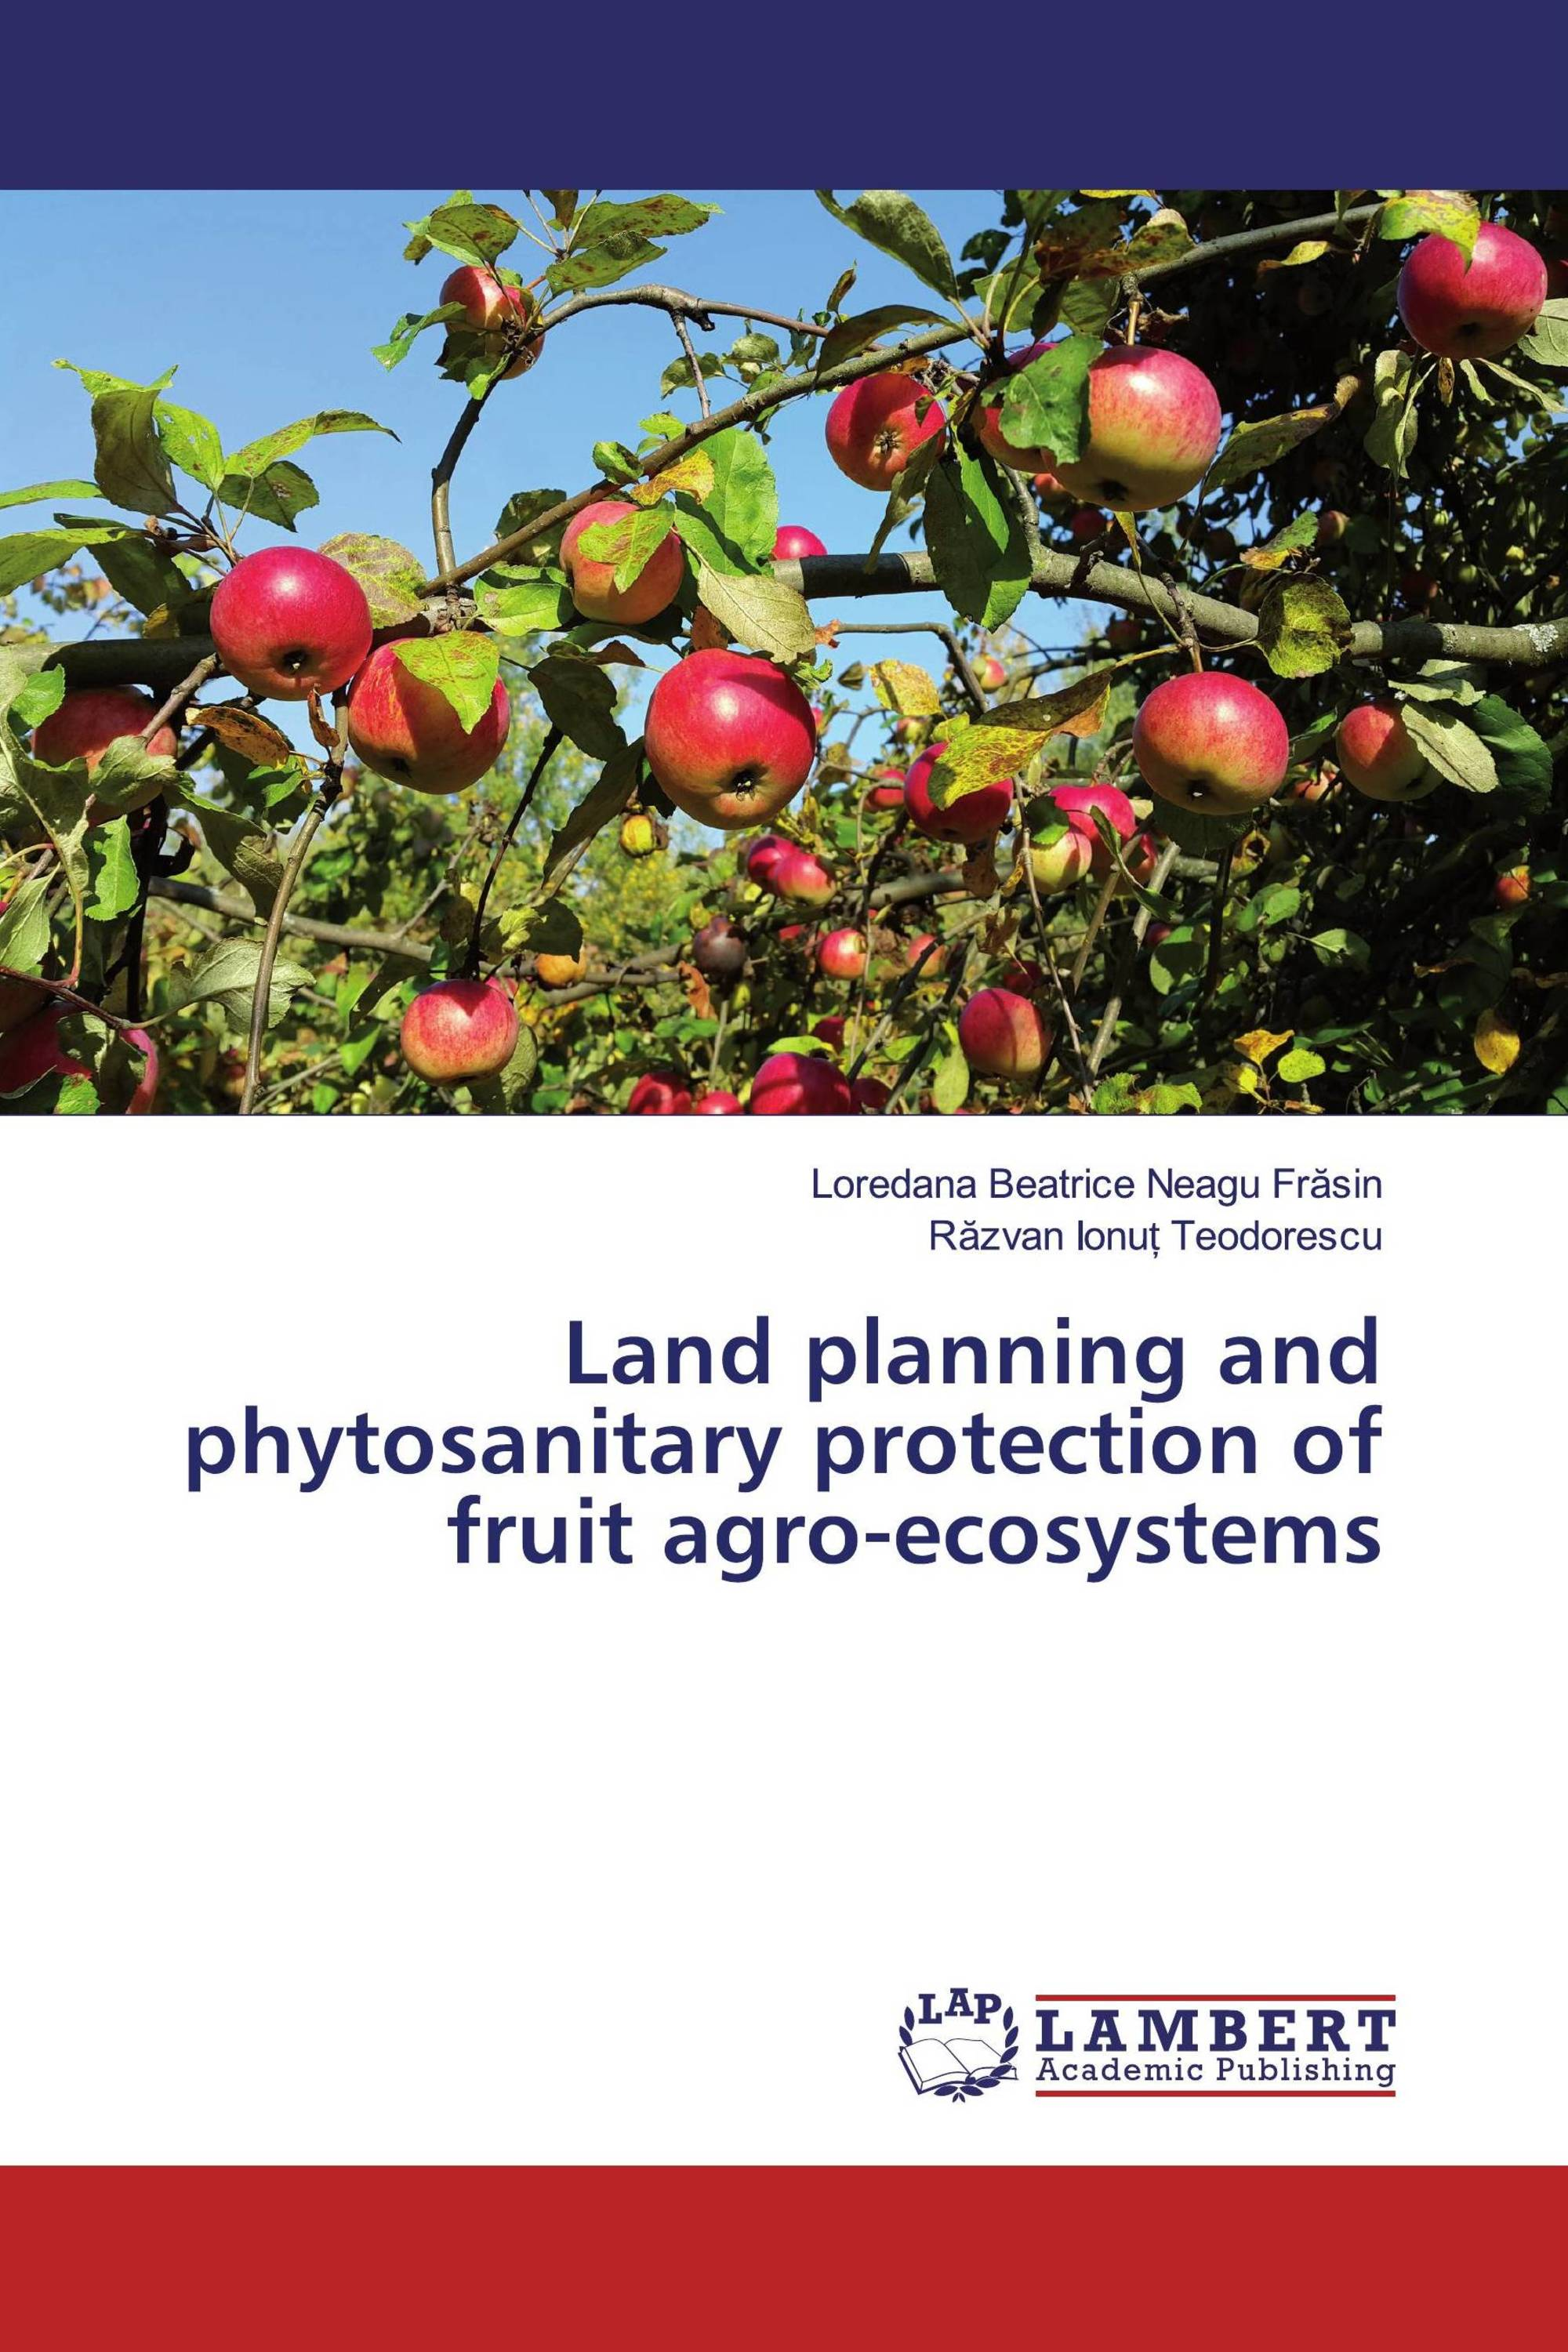 Land planning and phytosanitary protection of fruit agro-ecosystems